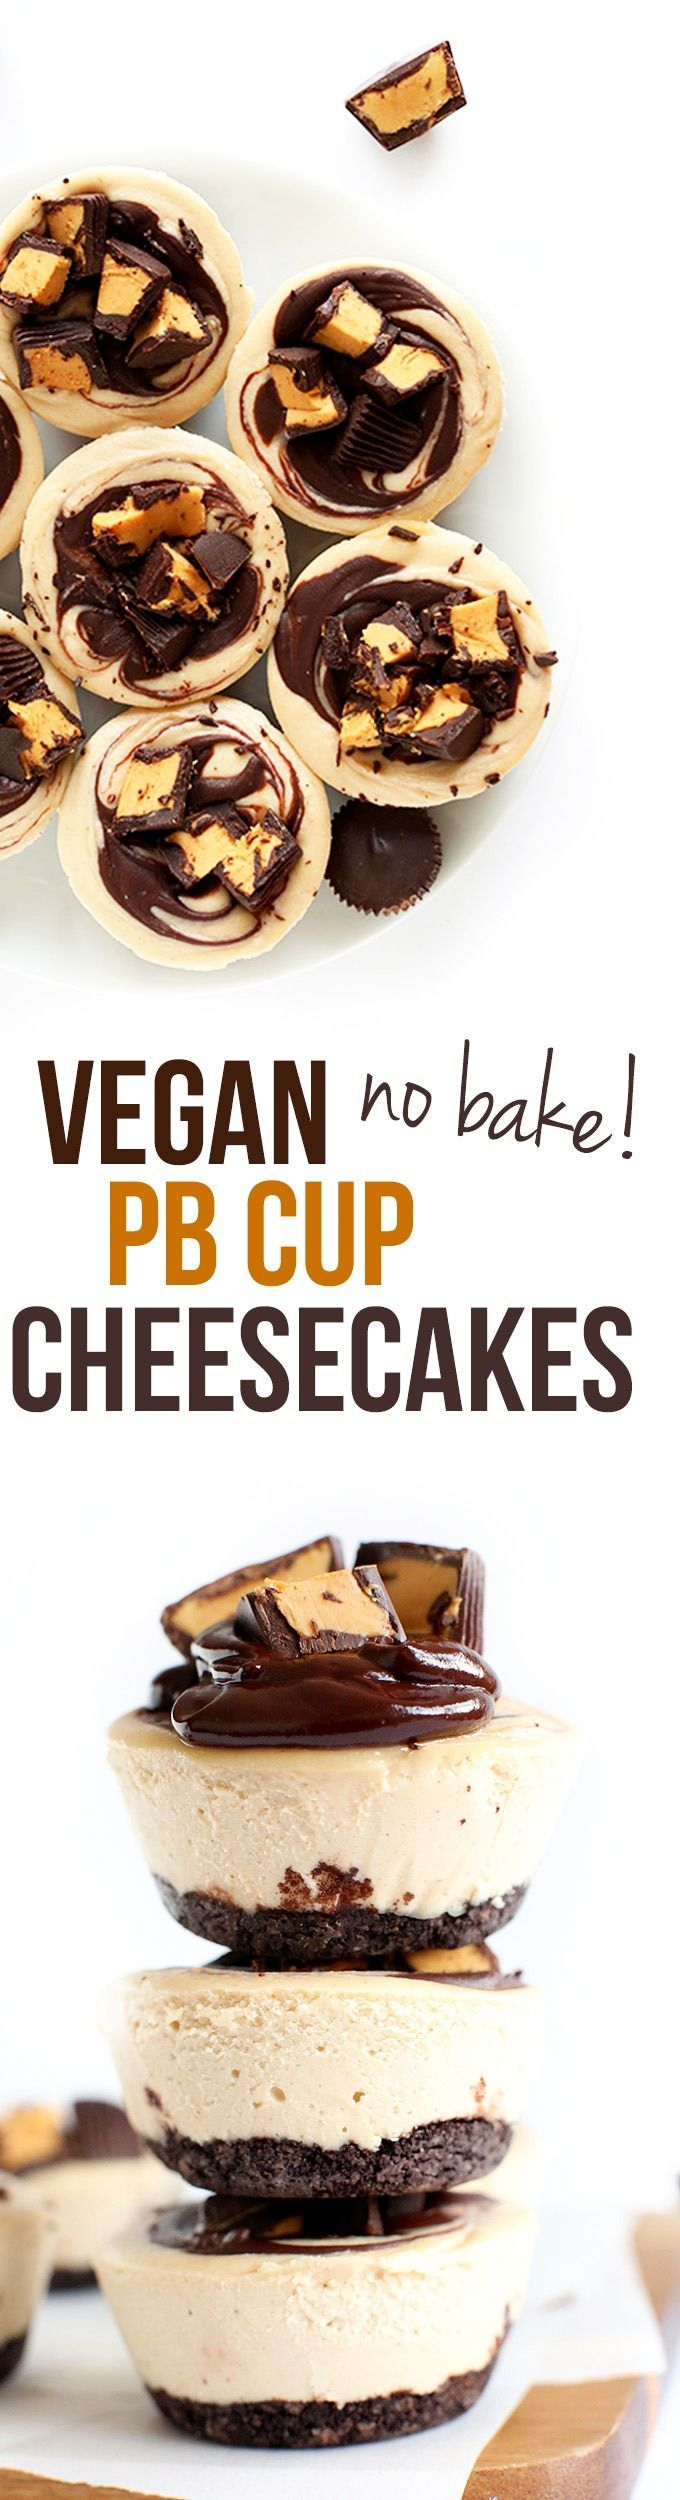 Amazing no bake cheesecakes loaded with Peanut Butter Cup flavor! Just 9 ingredients and this vegan dish is ready to enjoy.